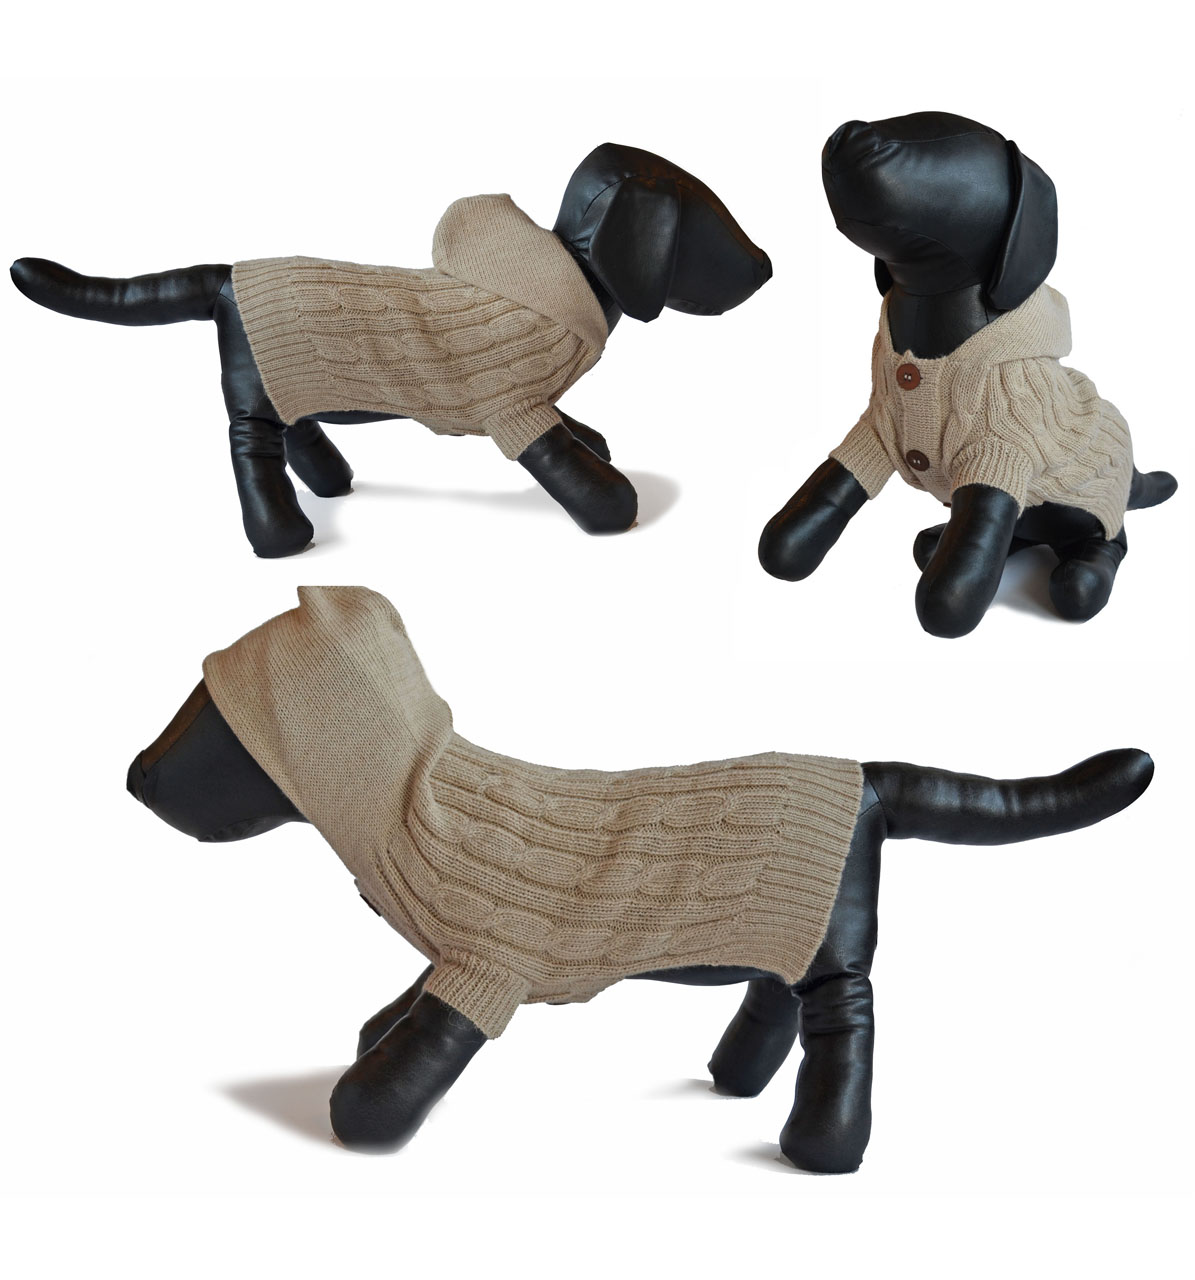 Fisherman Hooded Dog Cardigan Sweater & Adult Scarf Set Dog sweater shown multiple sides